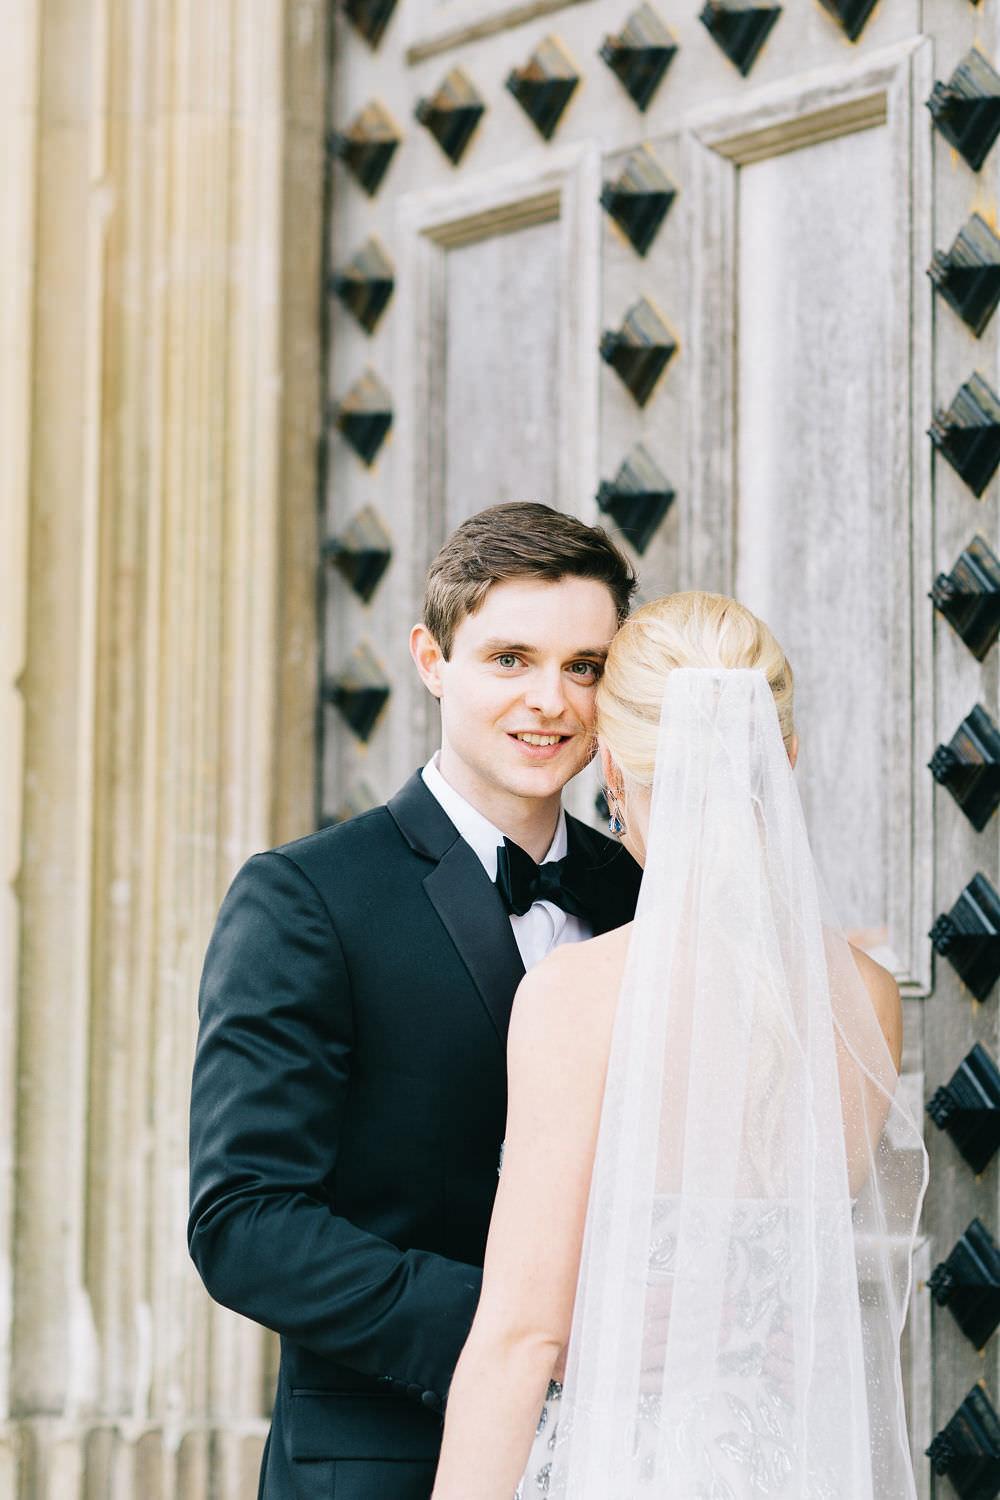 Groom Suit Tuxedo Black Bow Tie Highcliffe Castle Wedding Bowtie and Belle Photography